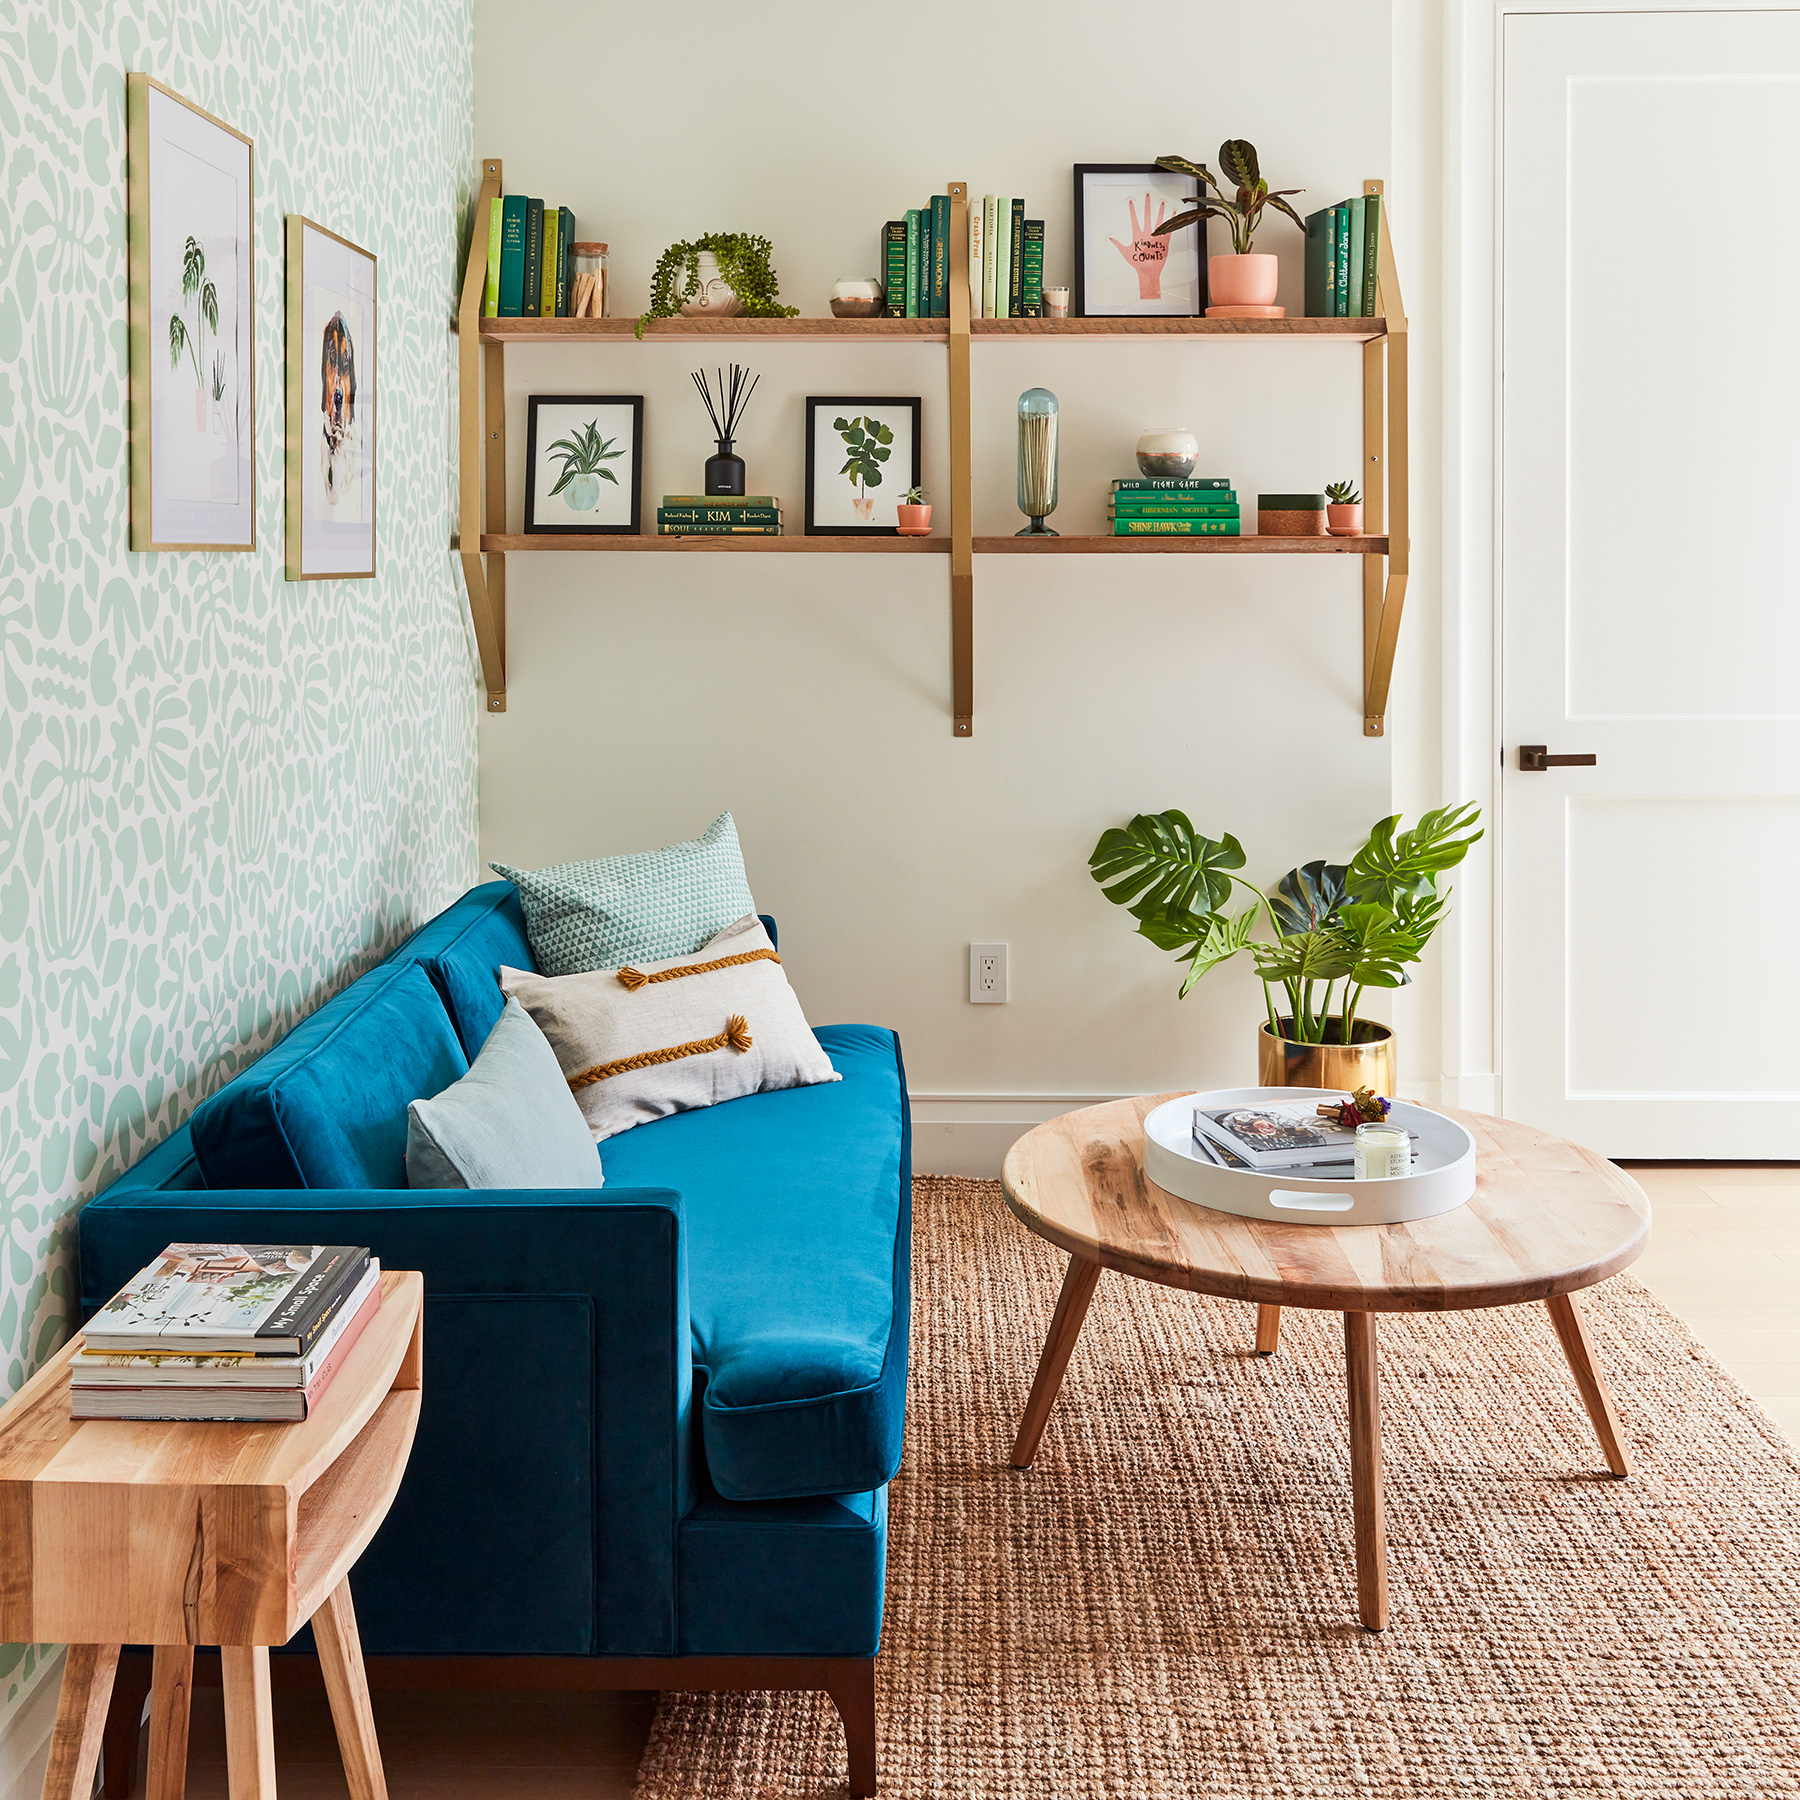 Best Places To Shop For Affordable Home Decor Online According To Pro Designers Real Simple